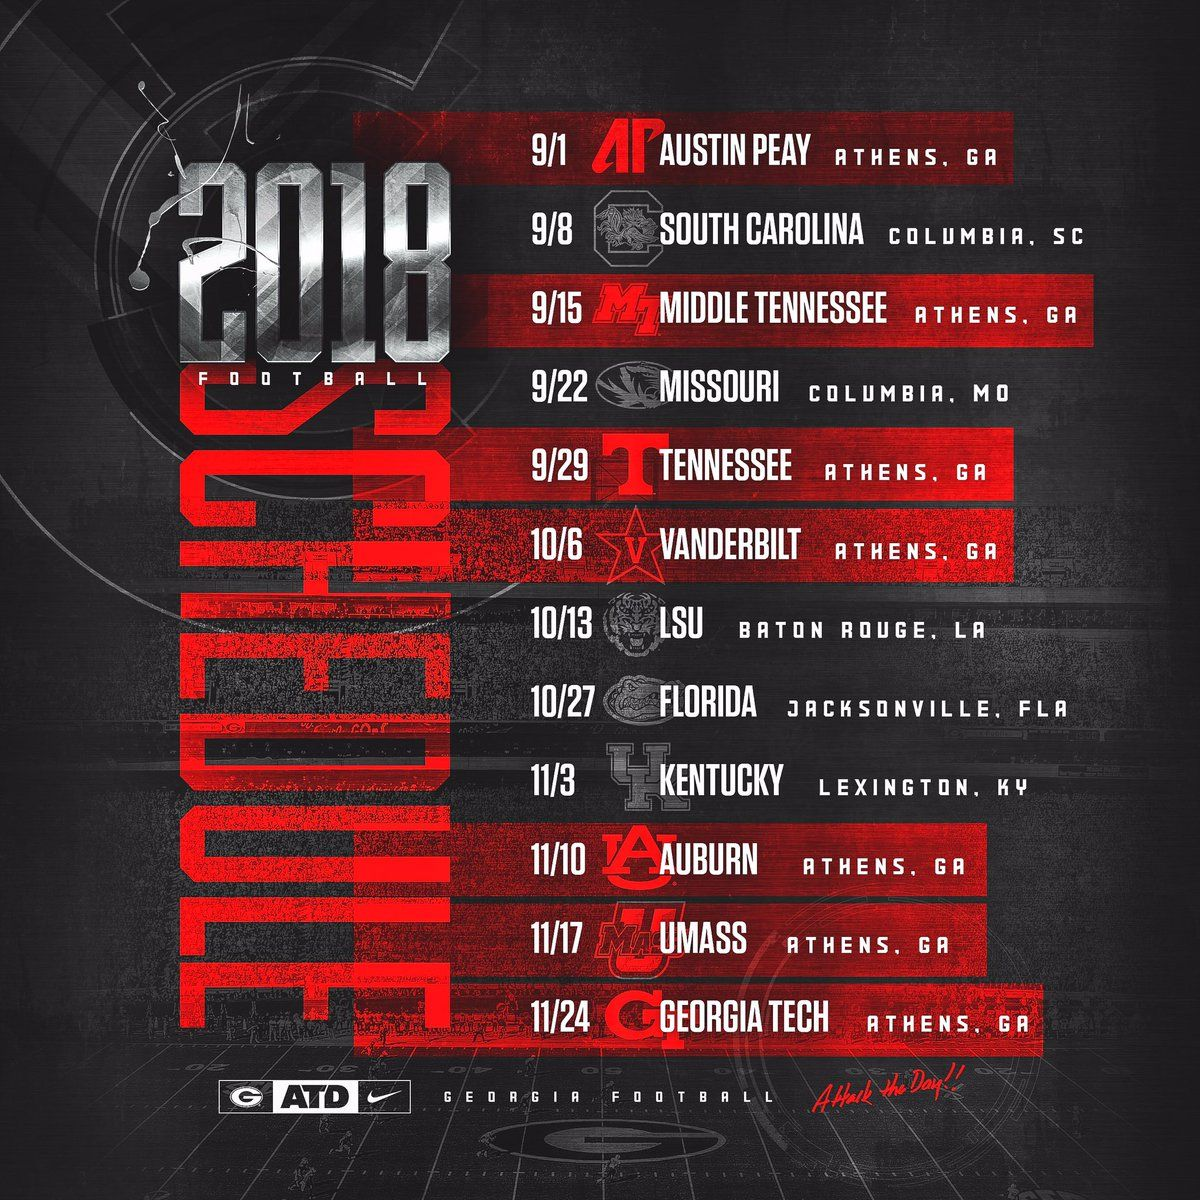 Uga Football Schedule 2019 Georgia Bulldog Football Schedule | Examples and Forms